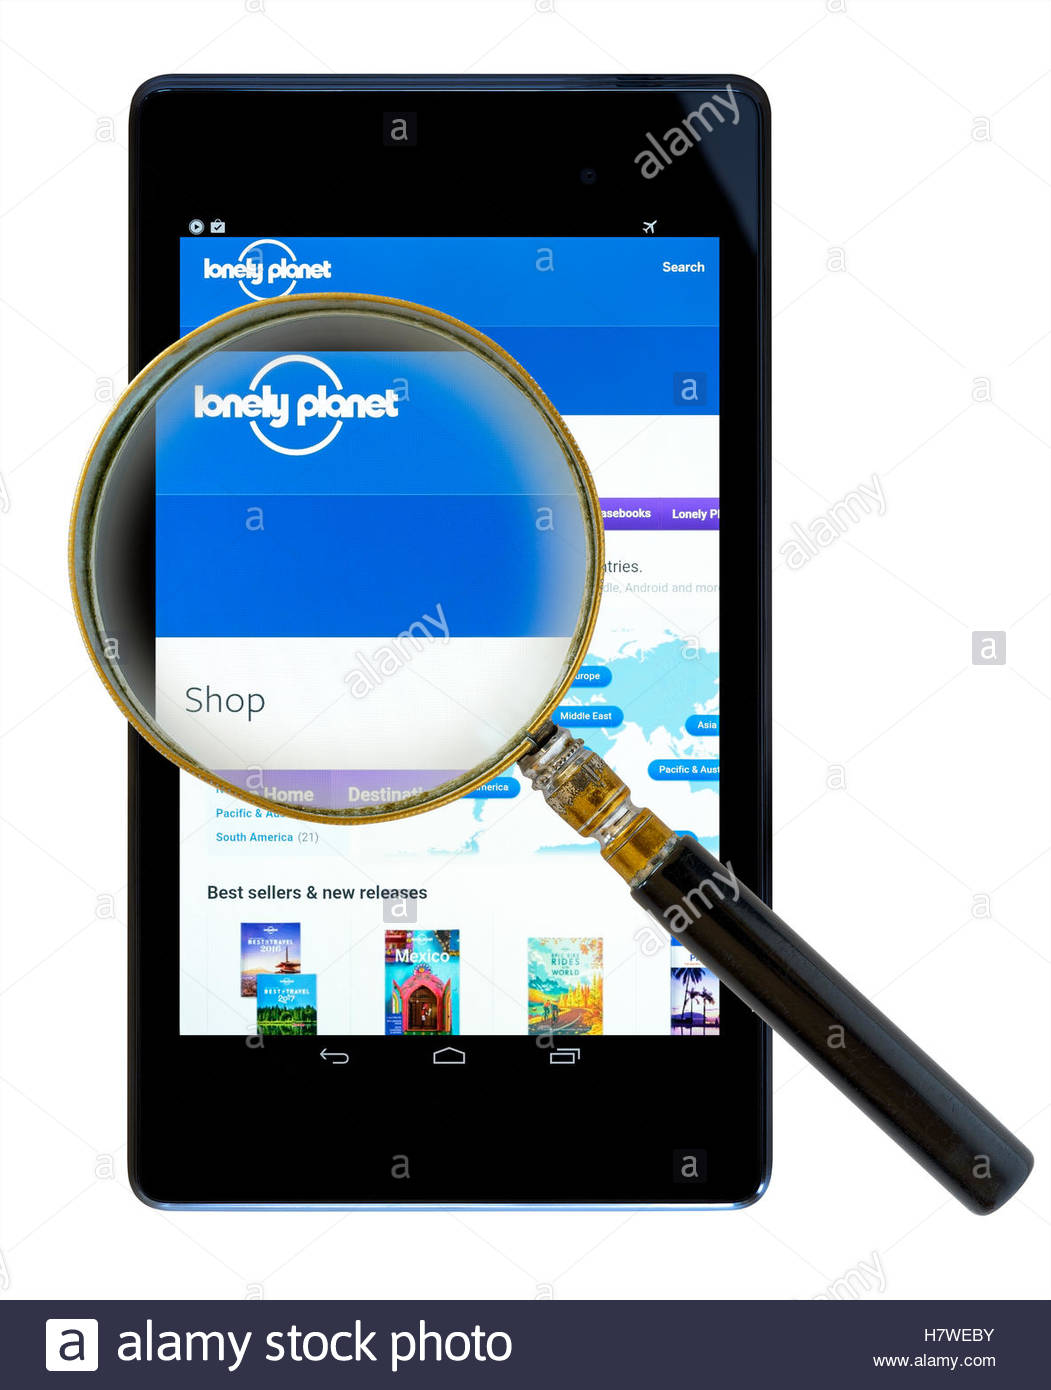 Lonely Planet travel guides shown on a tablet computer, Dorset, England, UK - Stock Image